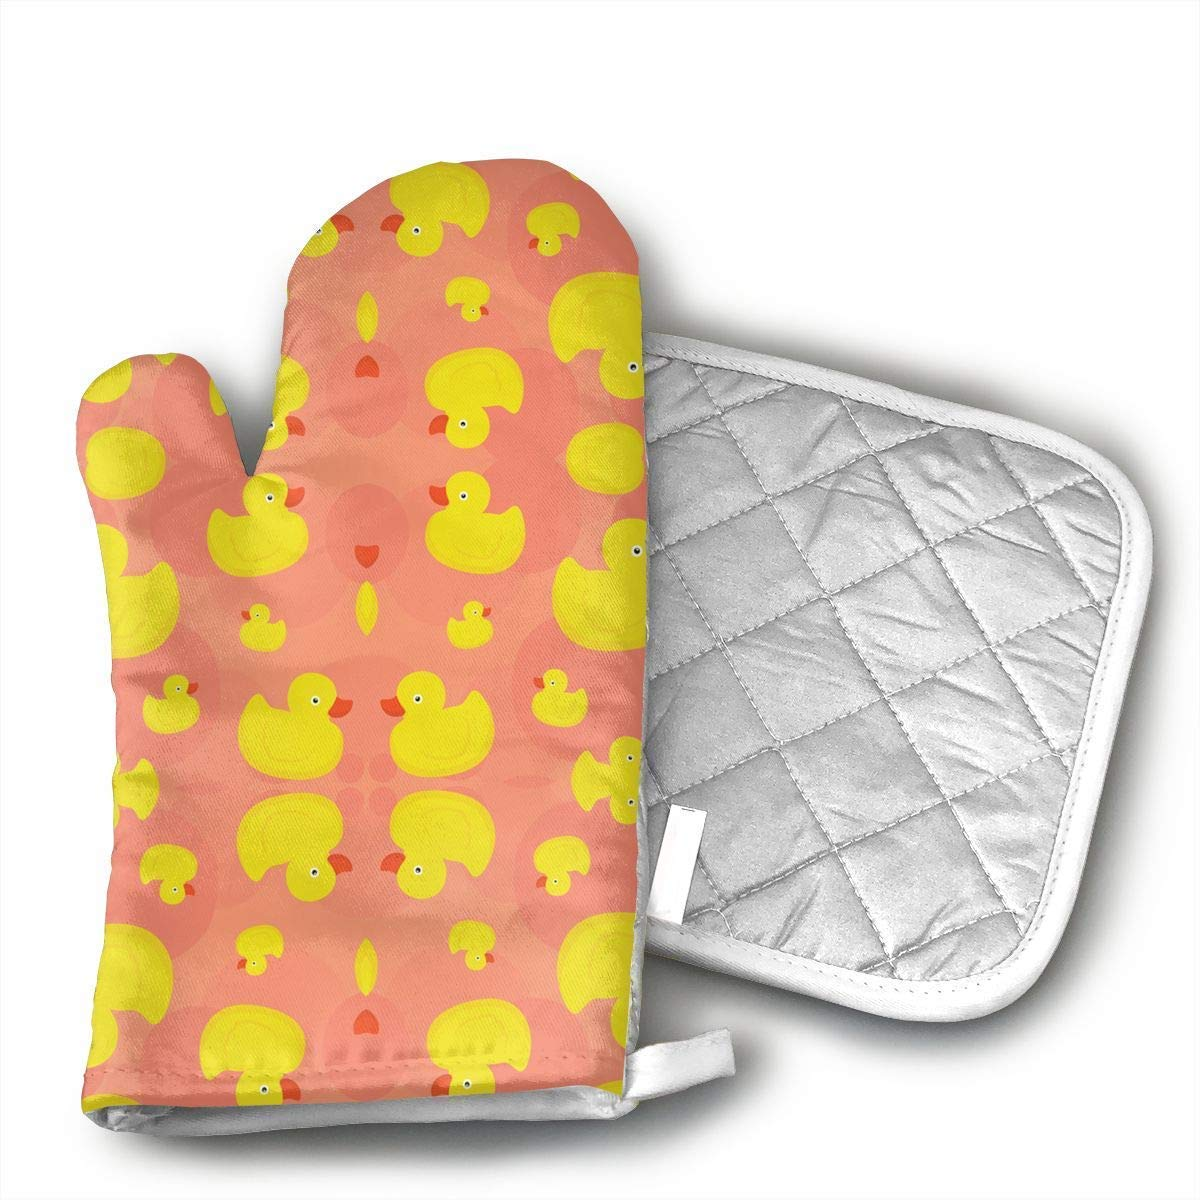 VAMIX Rubber Duck (Pink) Oven Mitts,Professional Heat Resistant Microwave BBQ Oven Insulation Thickening Cotton Gloves Baking Pot Mitts Soft Inner Lining Kitchen Cooking